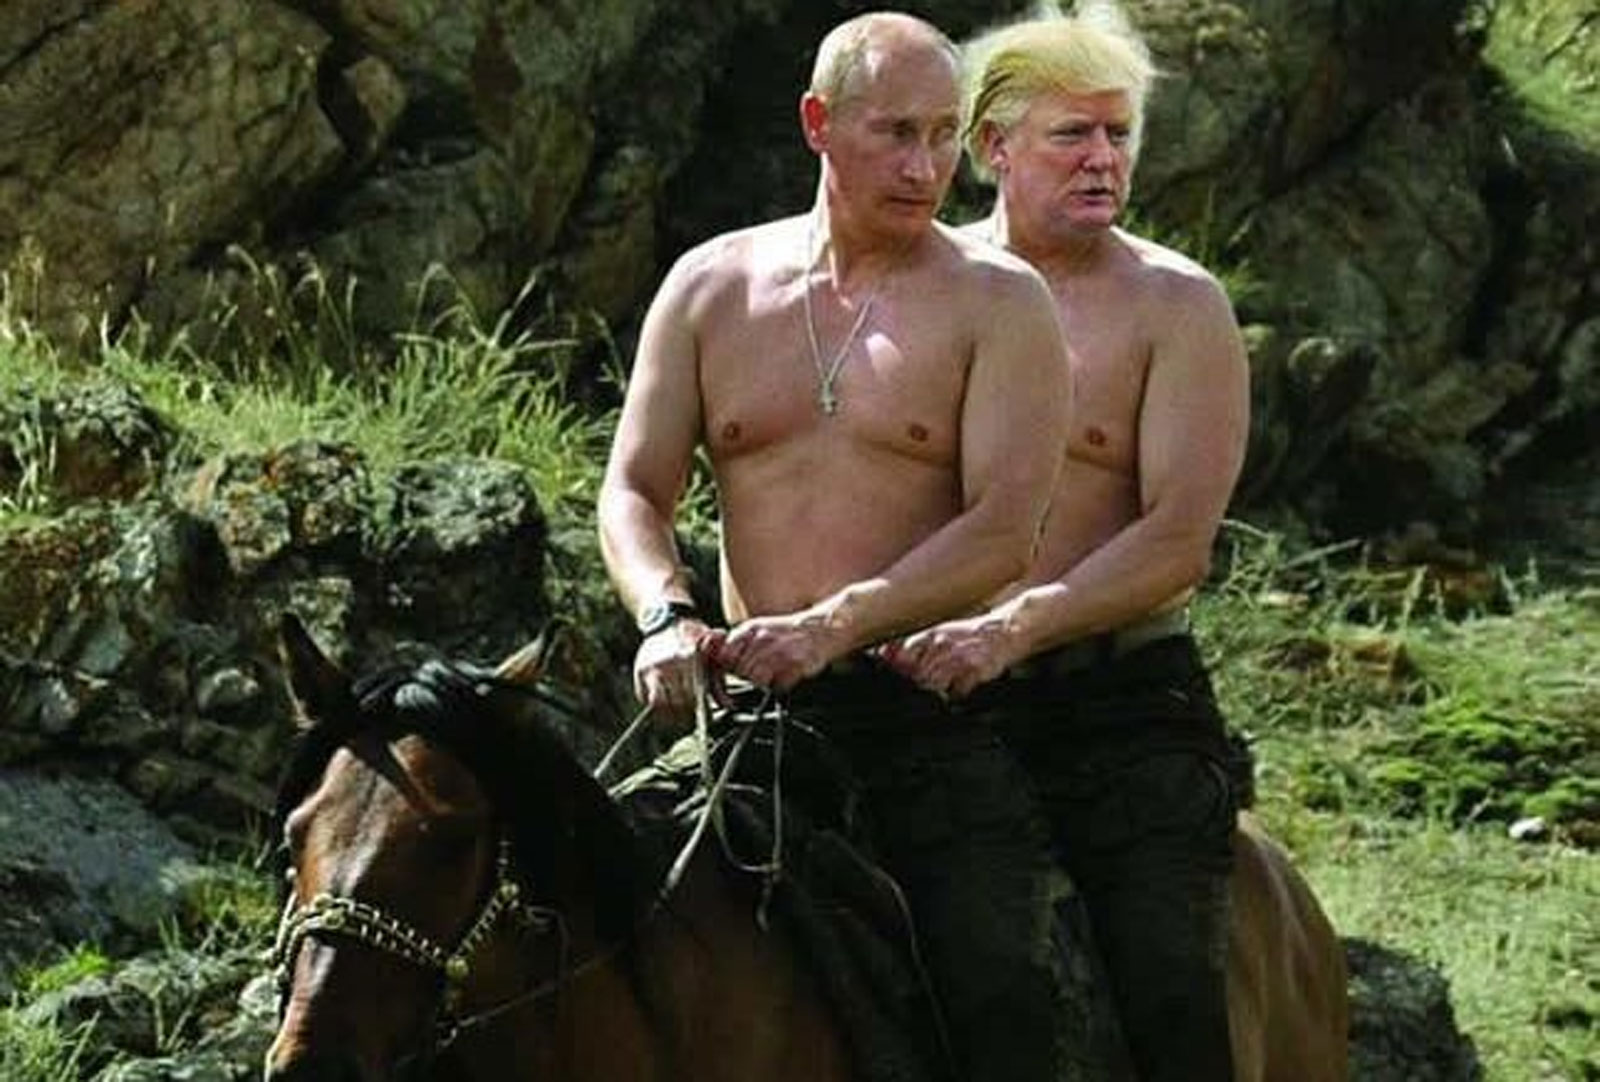 What's the Relationship Between Trump and Putin?